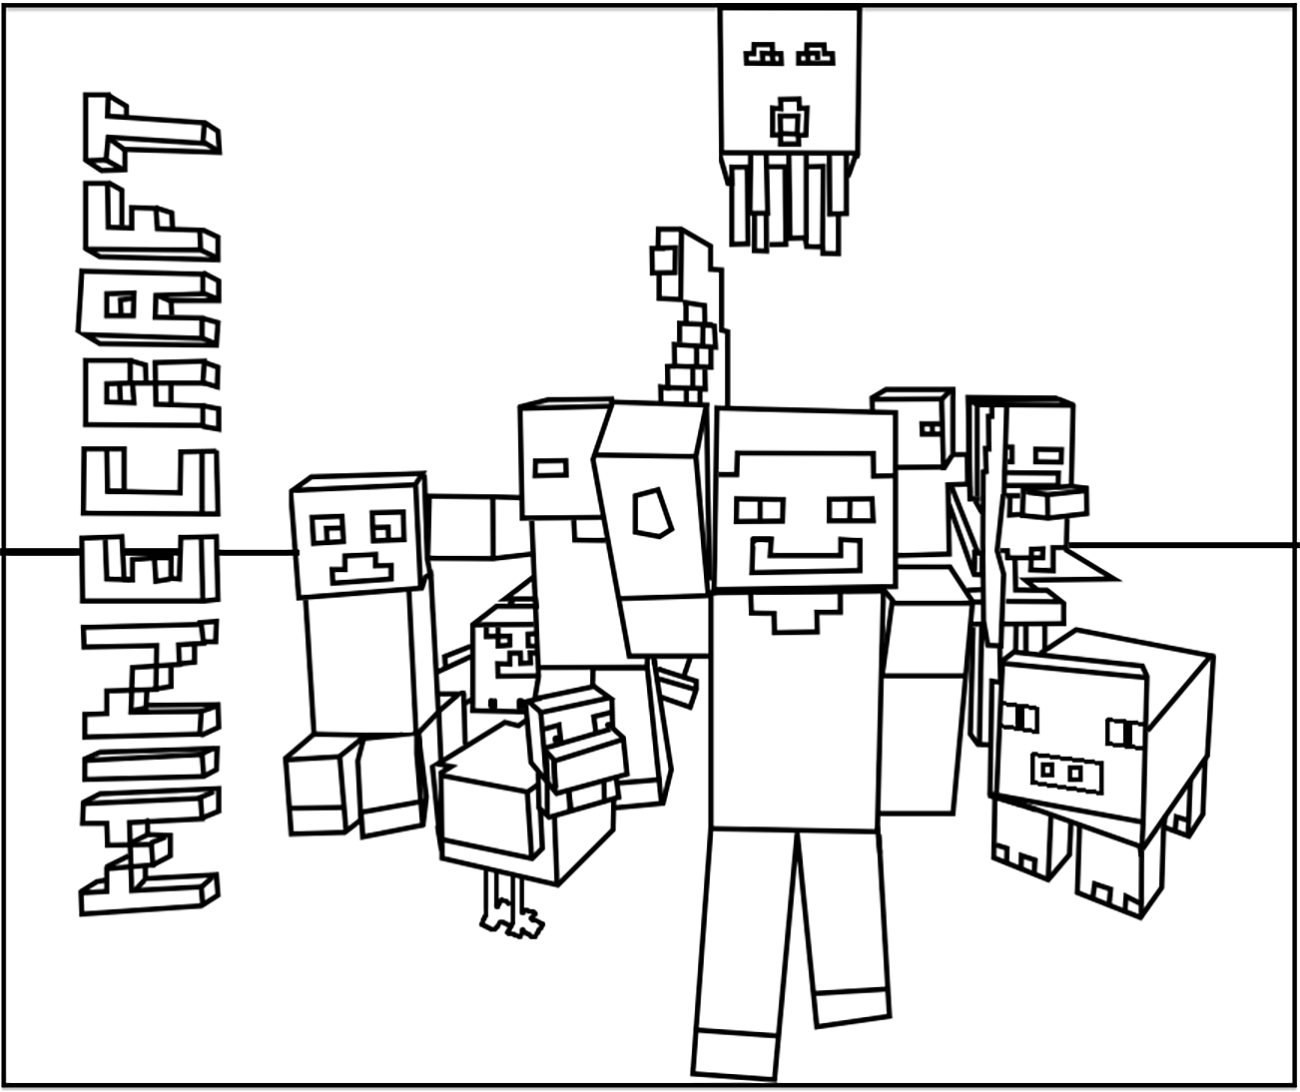 coloring pages for minecraft minecraft coloring pages best coloring pages for kids coloring minecraft for pages